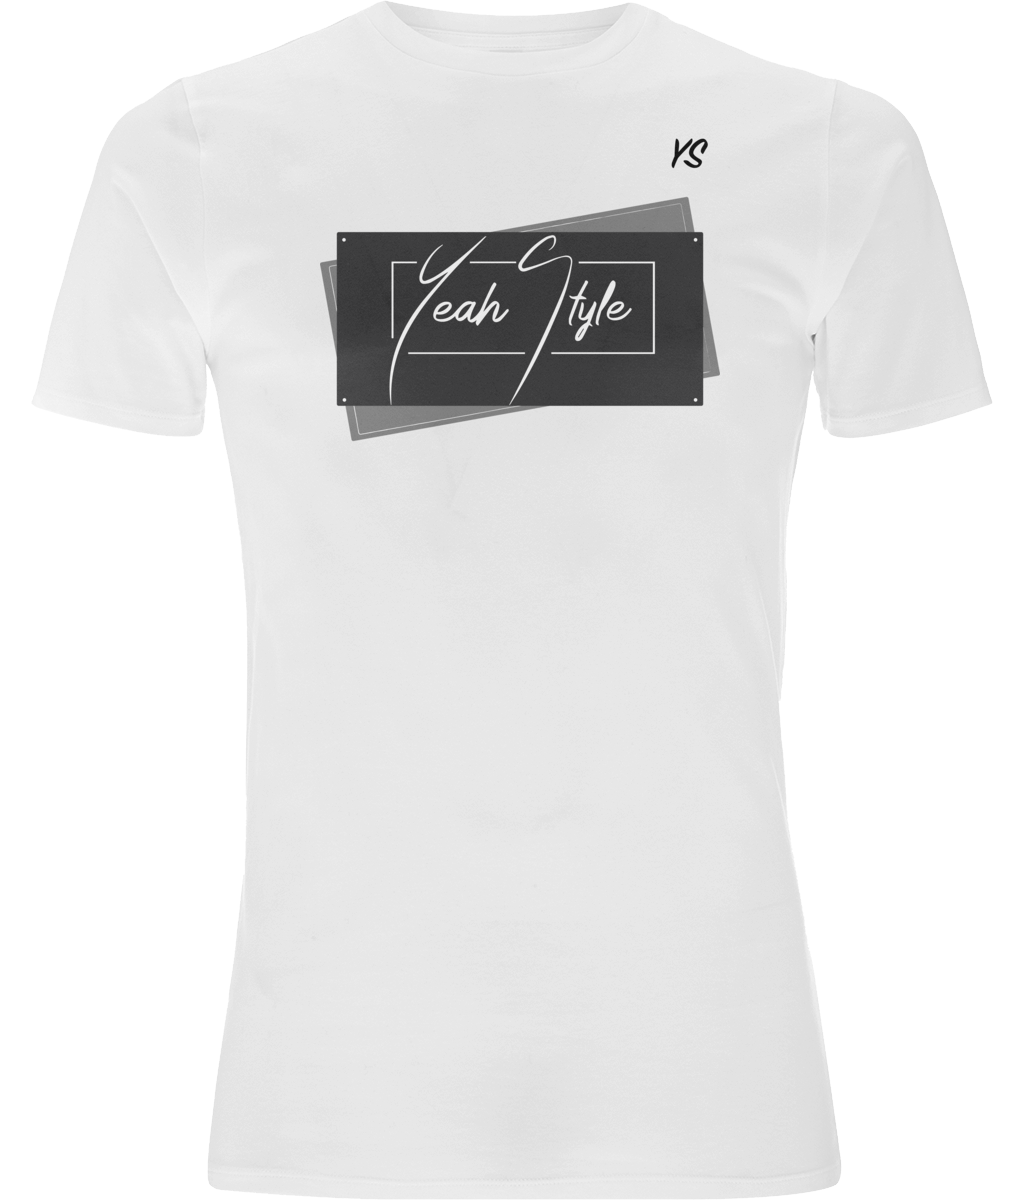 T-shirt YeahStyle manches courtes stretch blanc